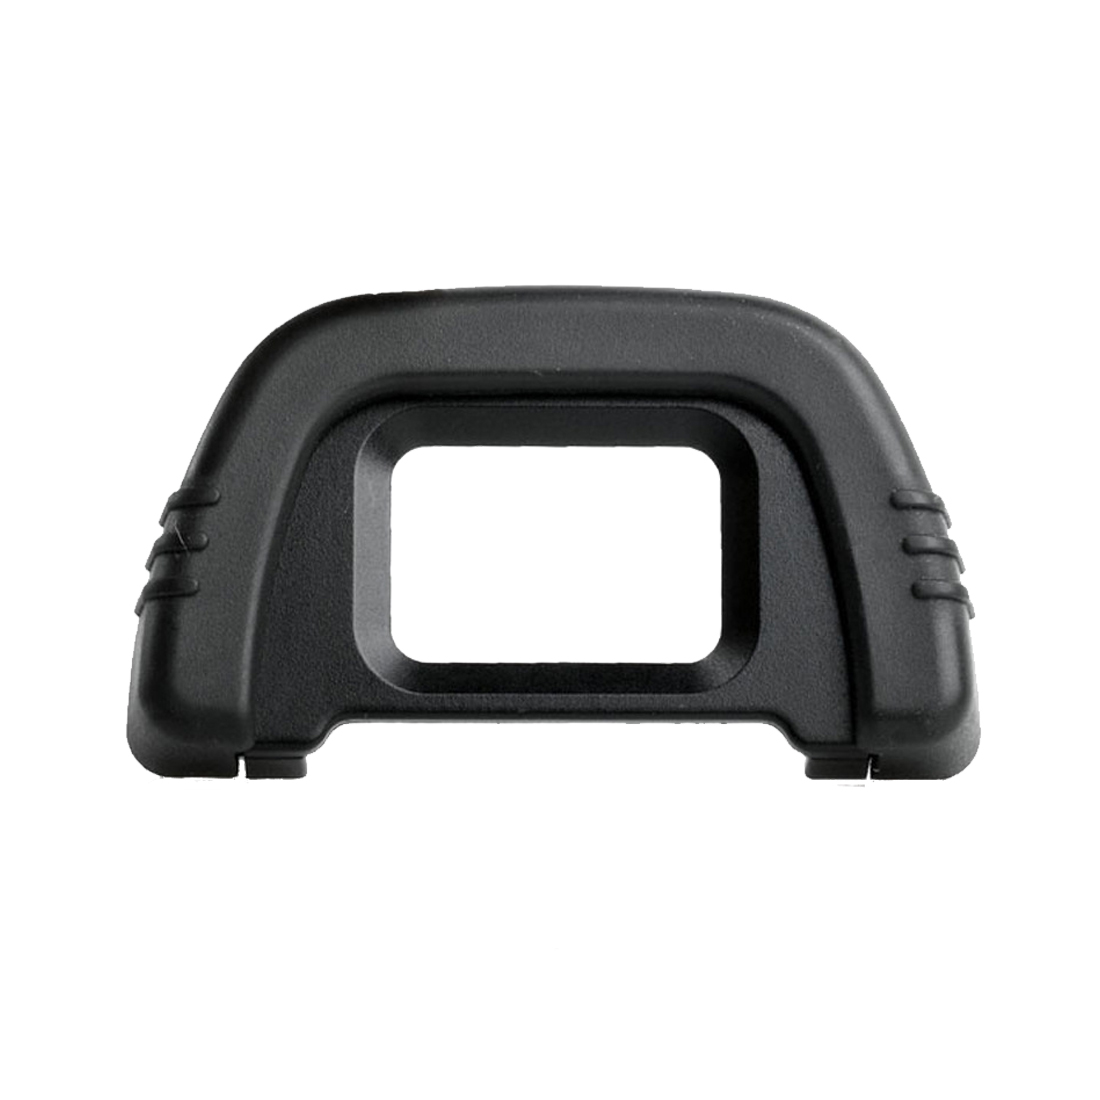 New Arrival Prevent Specular Atomization Camera Viewfinder Eyecup Protection Cover for Nikon DK-21 D7000 D90 D200 D80 D70S D70 wired remote shutter release for nikon d80 d70s 98cm length